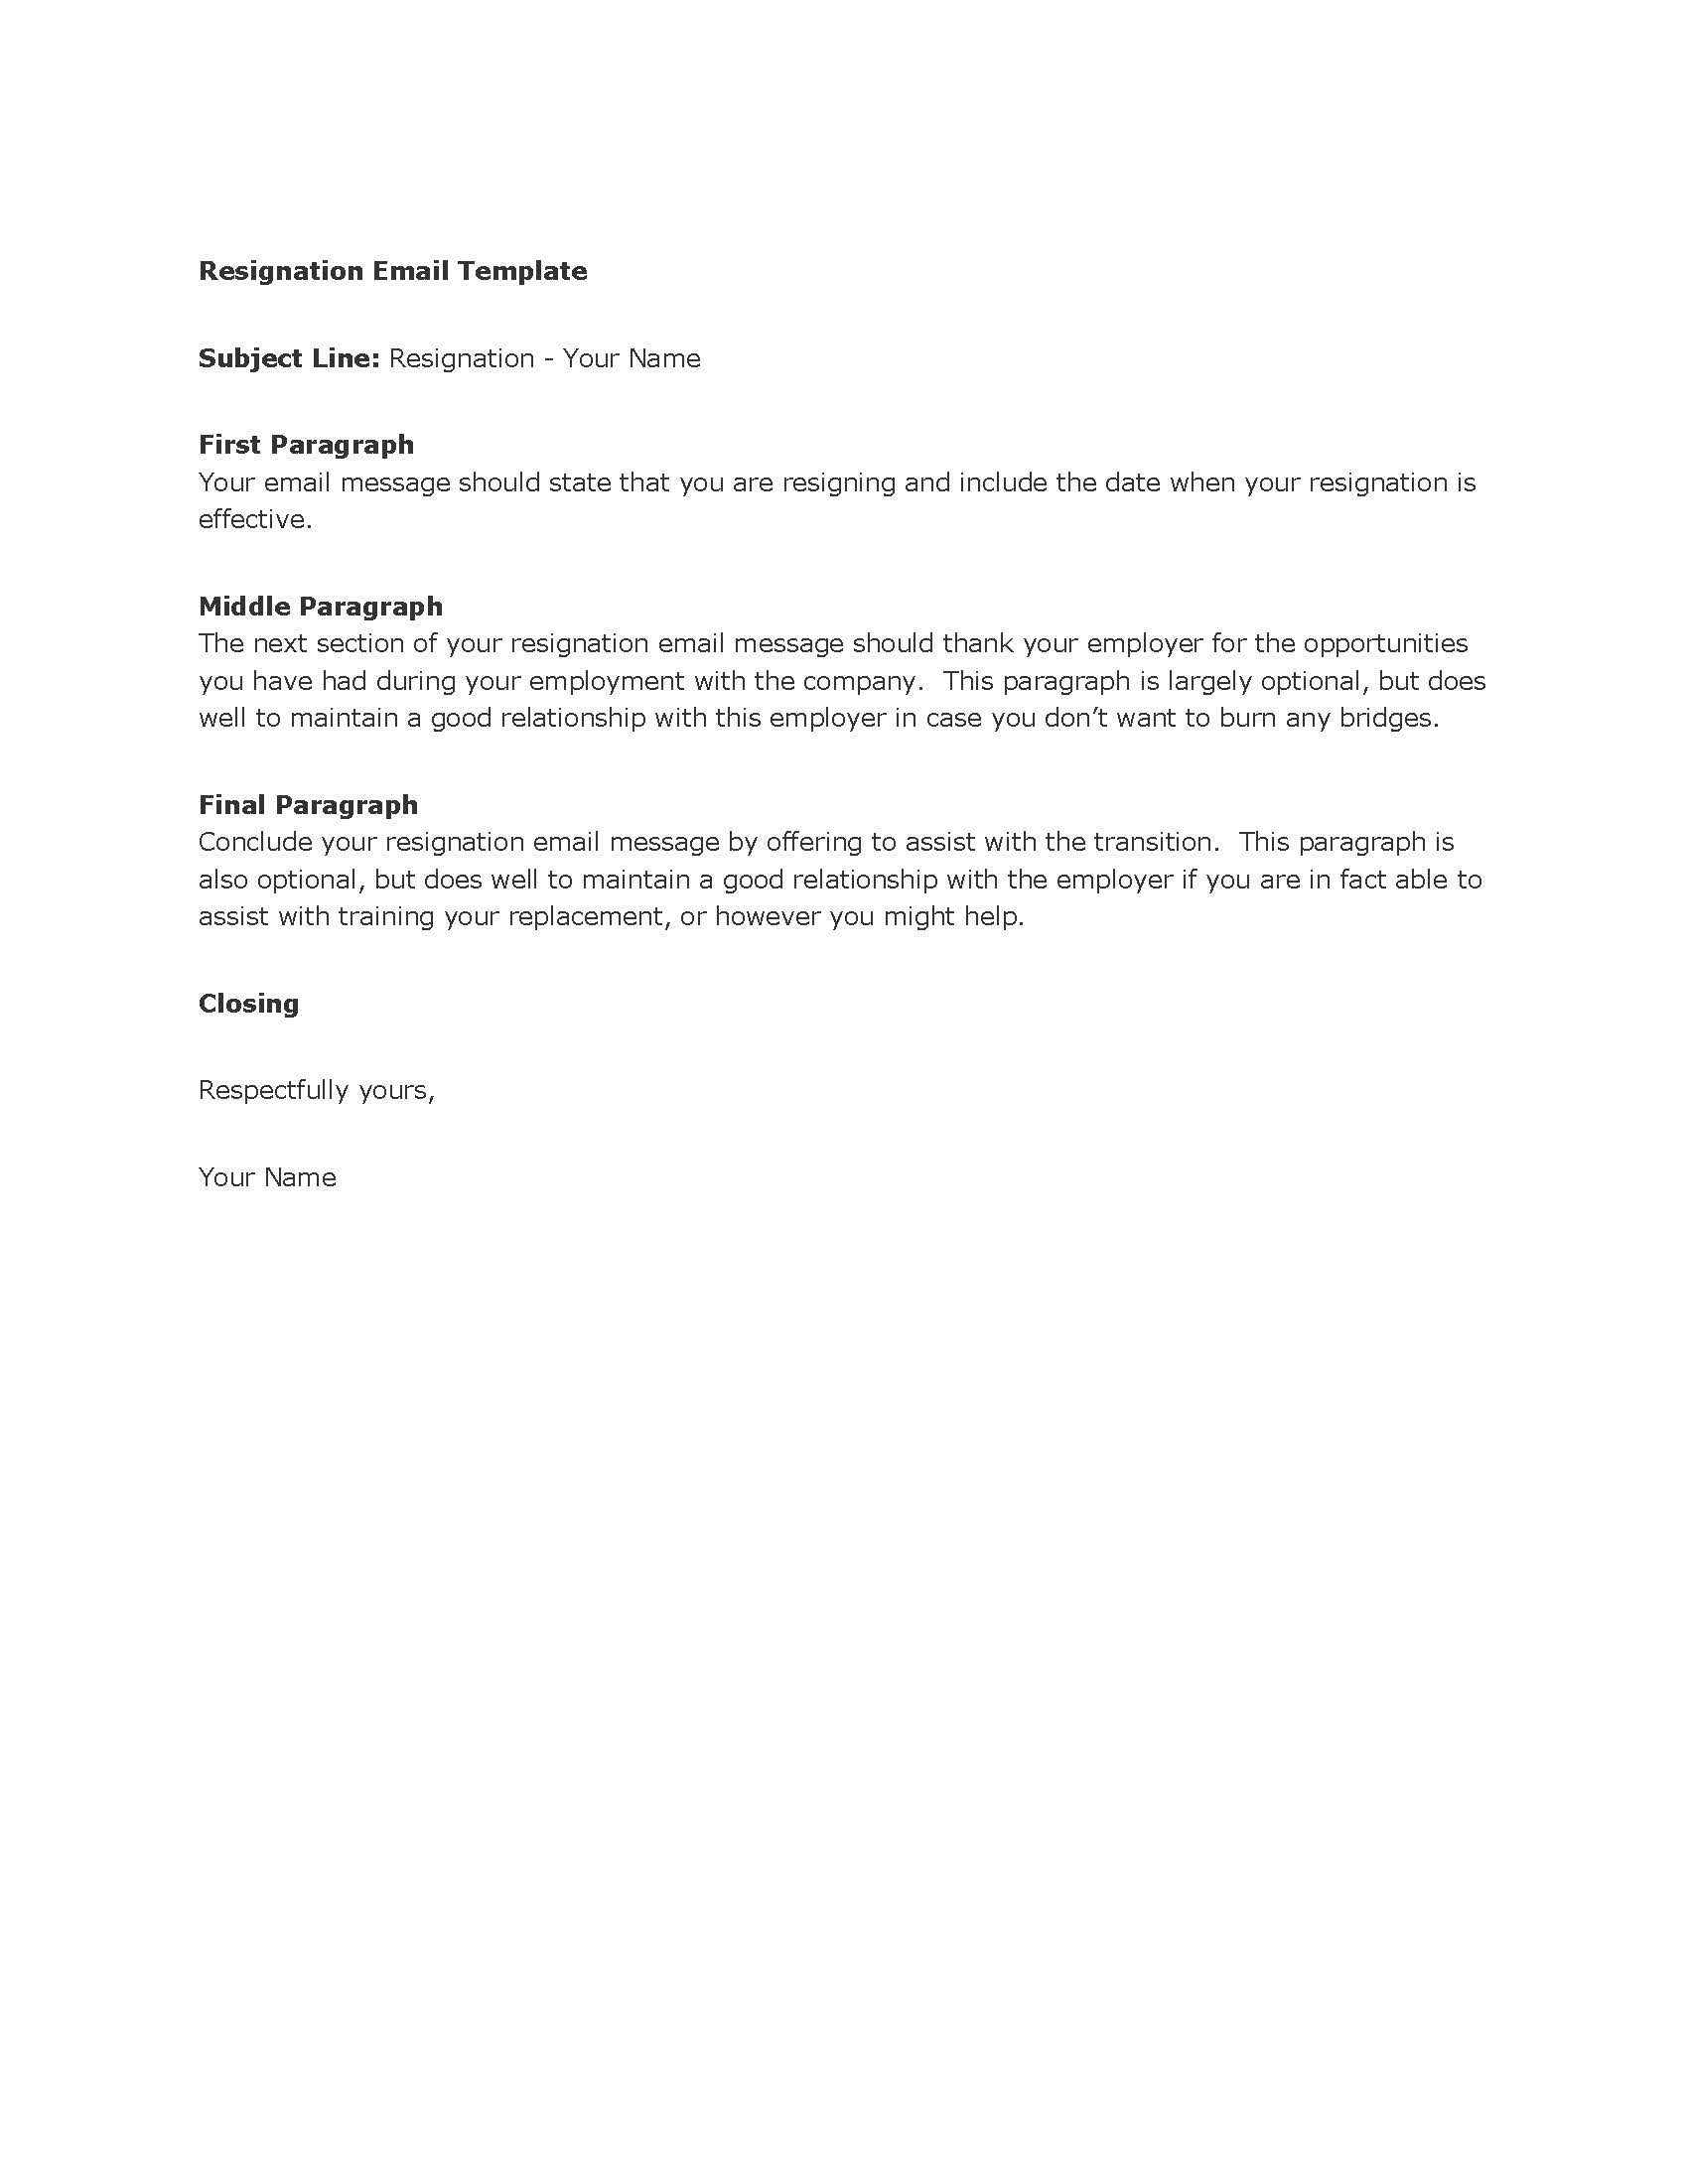 template resignation email business email templatewriting a letter template resignation email business email templatewriting a letter of resignation email letter sample